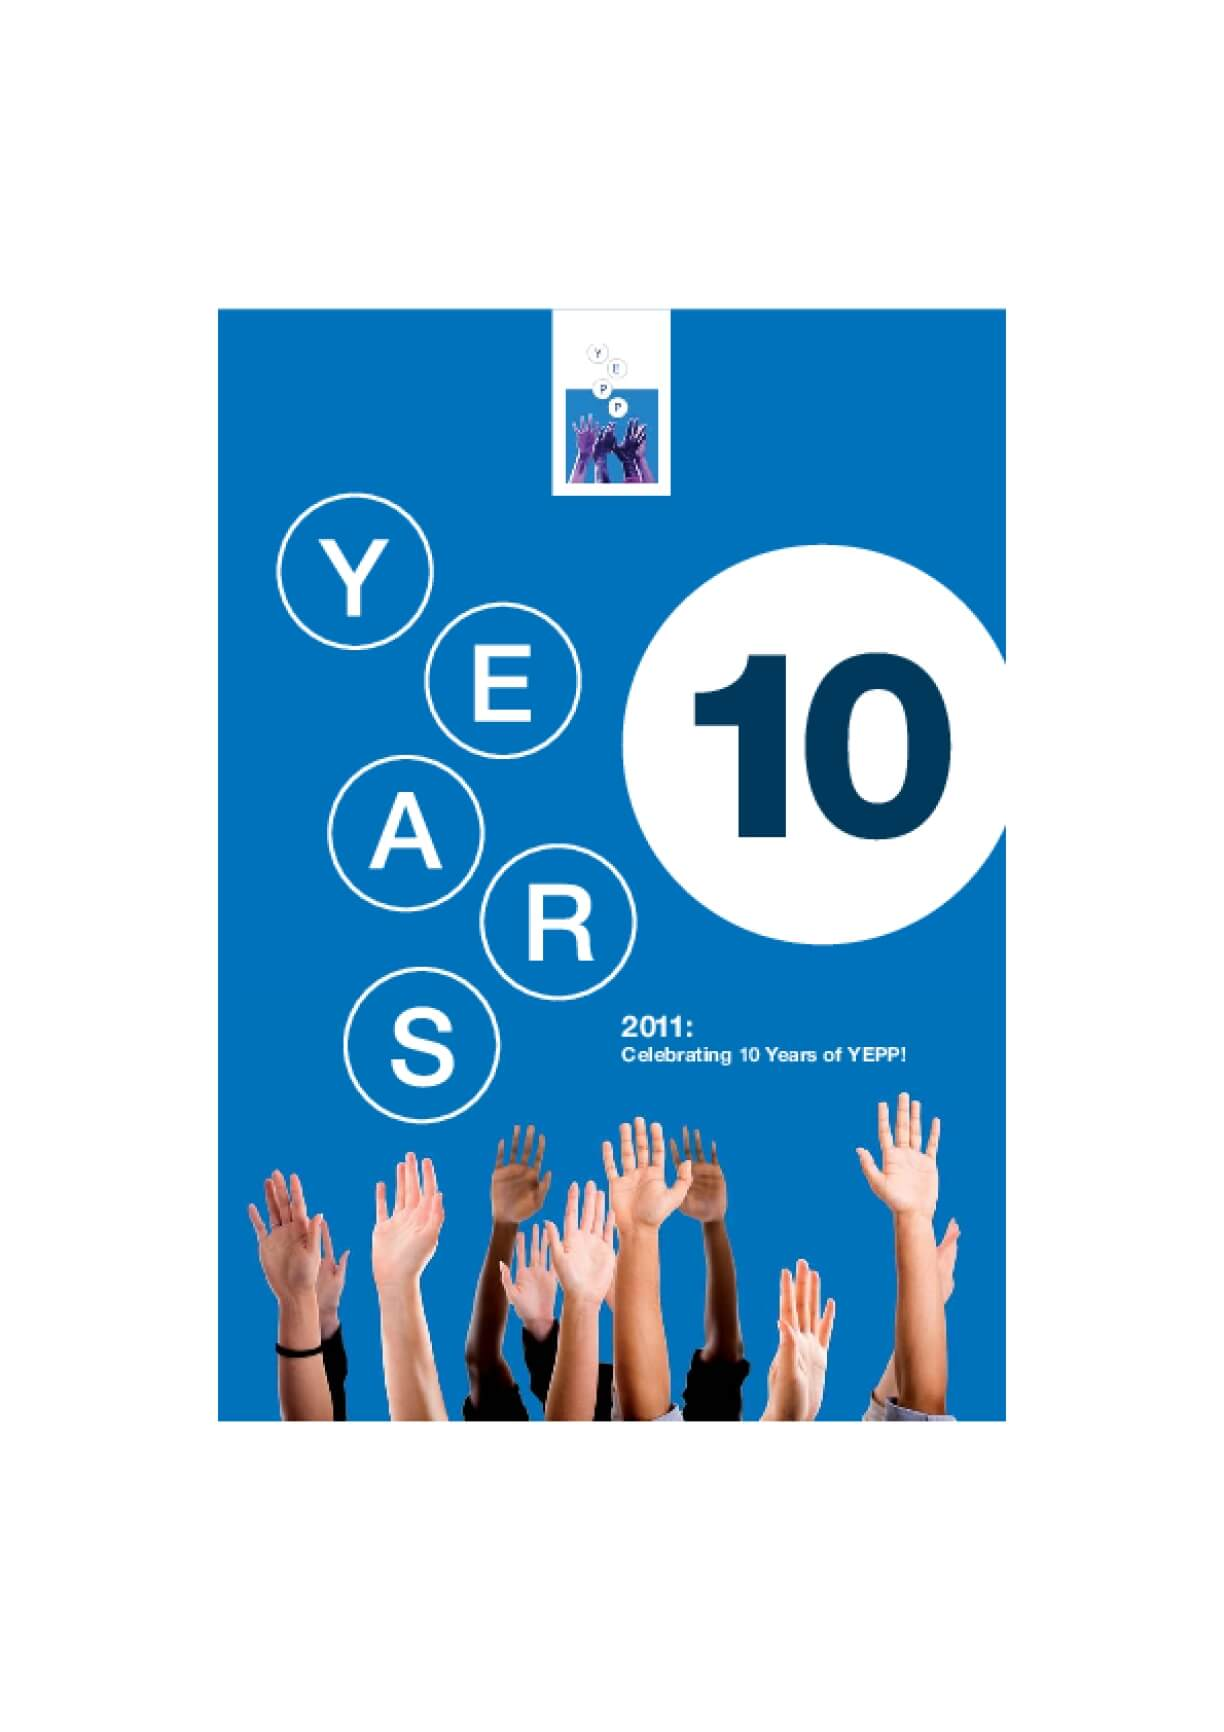 2011: Celebrating 10 Years of YEPP!